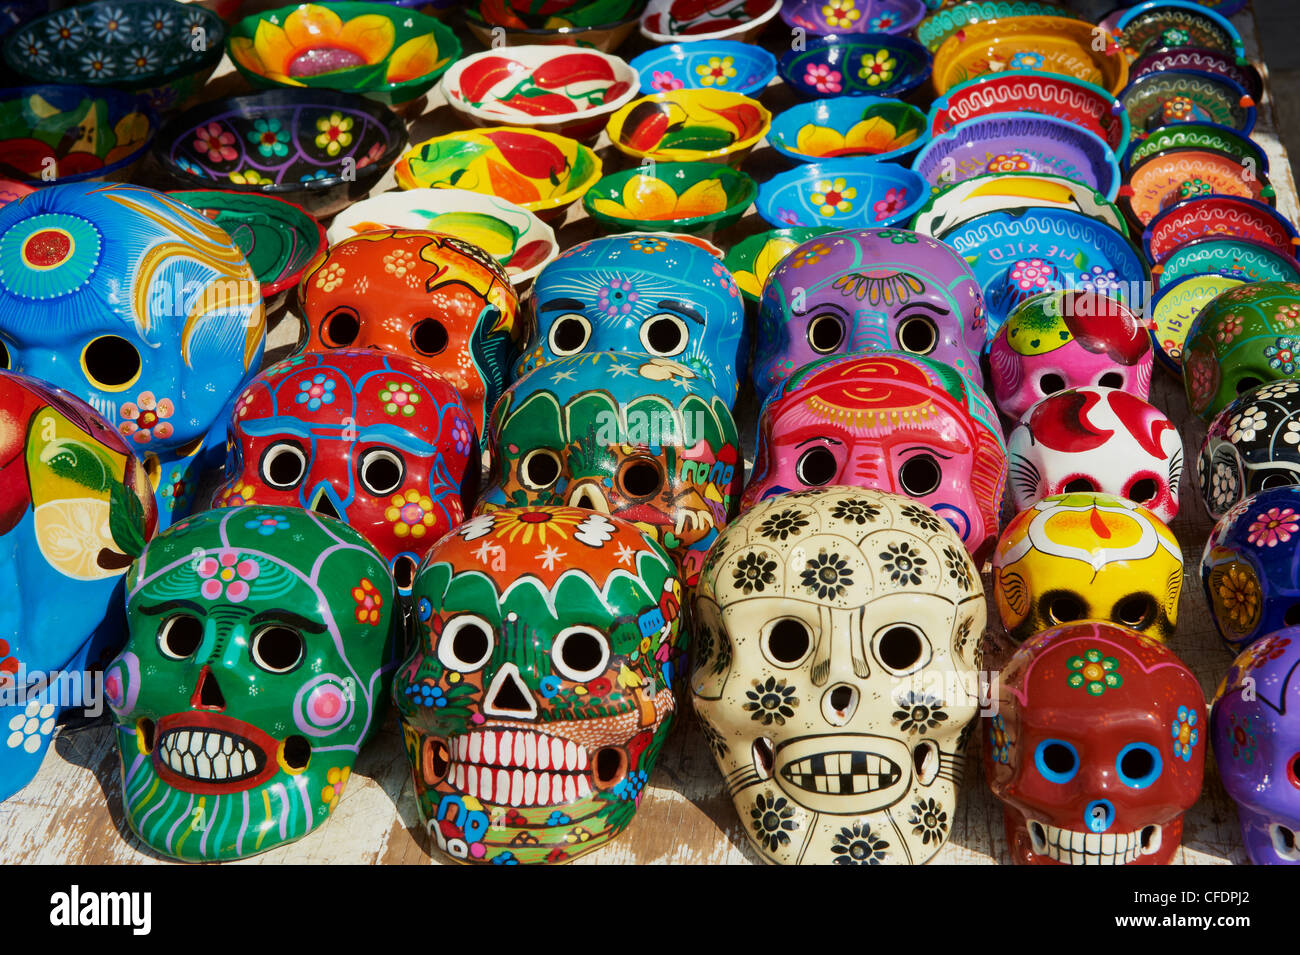 Handicrafts, masks for sale, Cancun, Quintana Roo, Mexico, - Stock Image